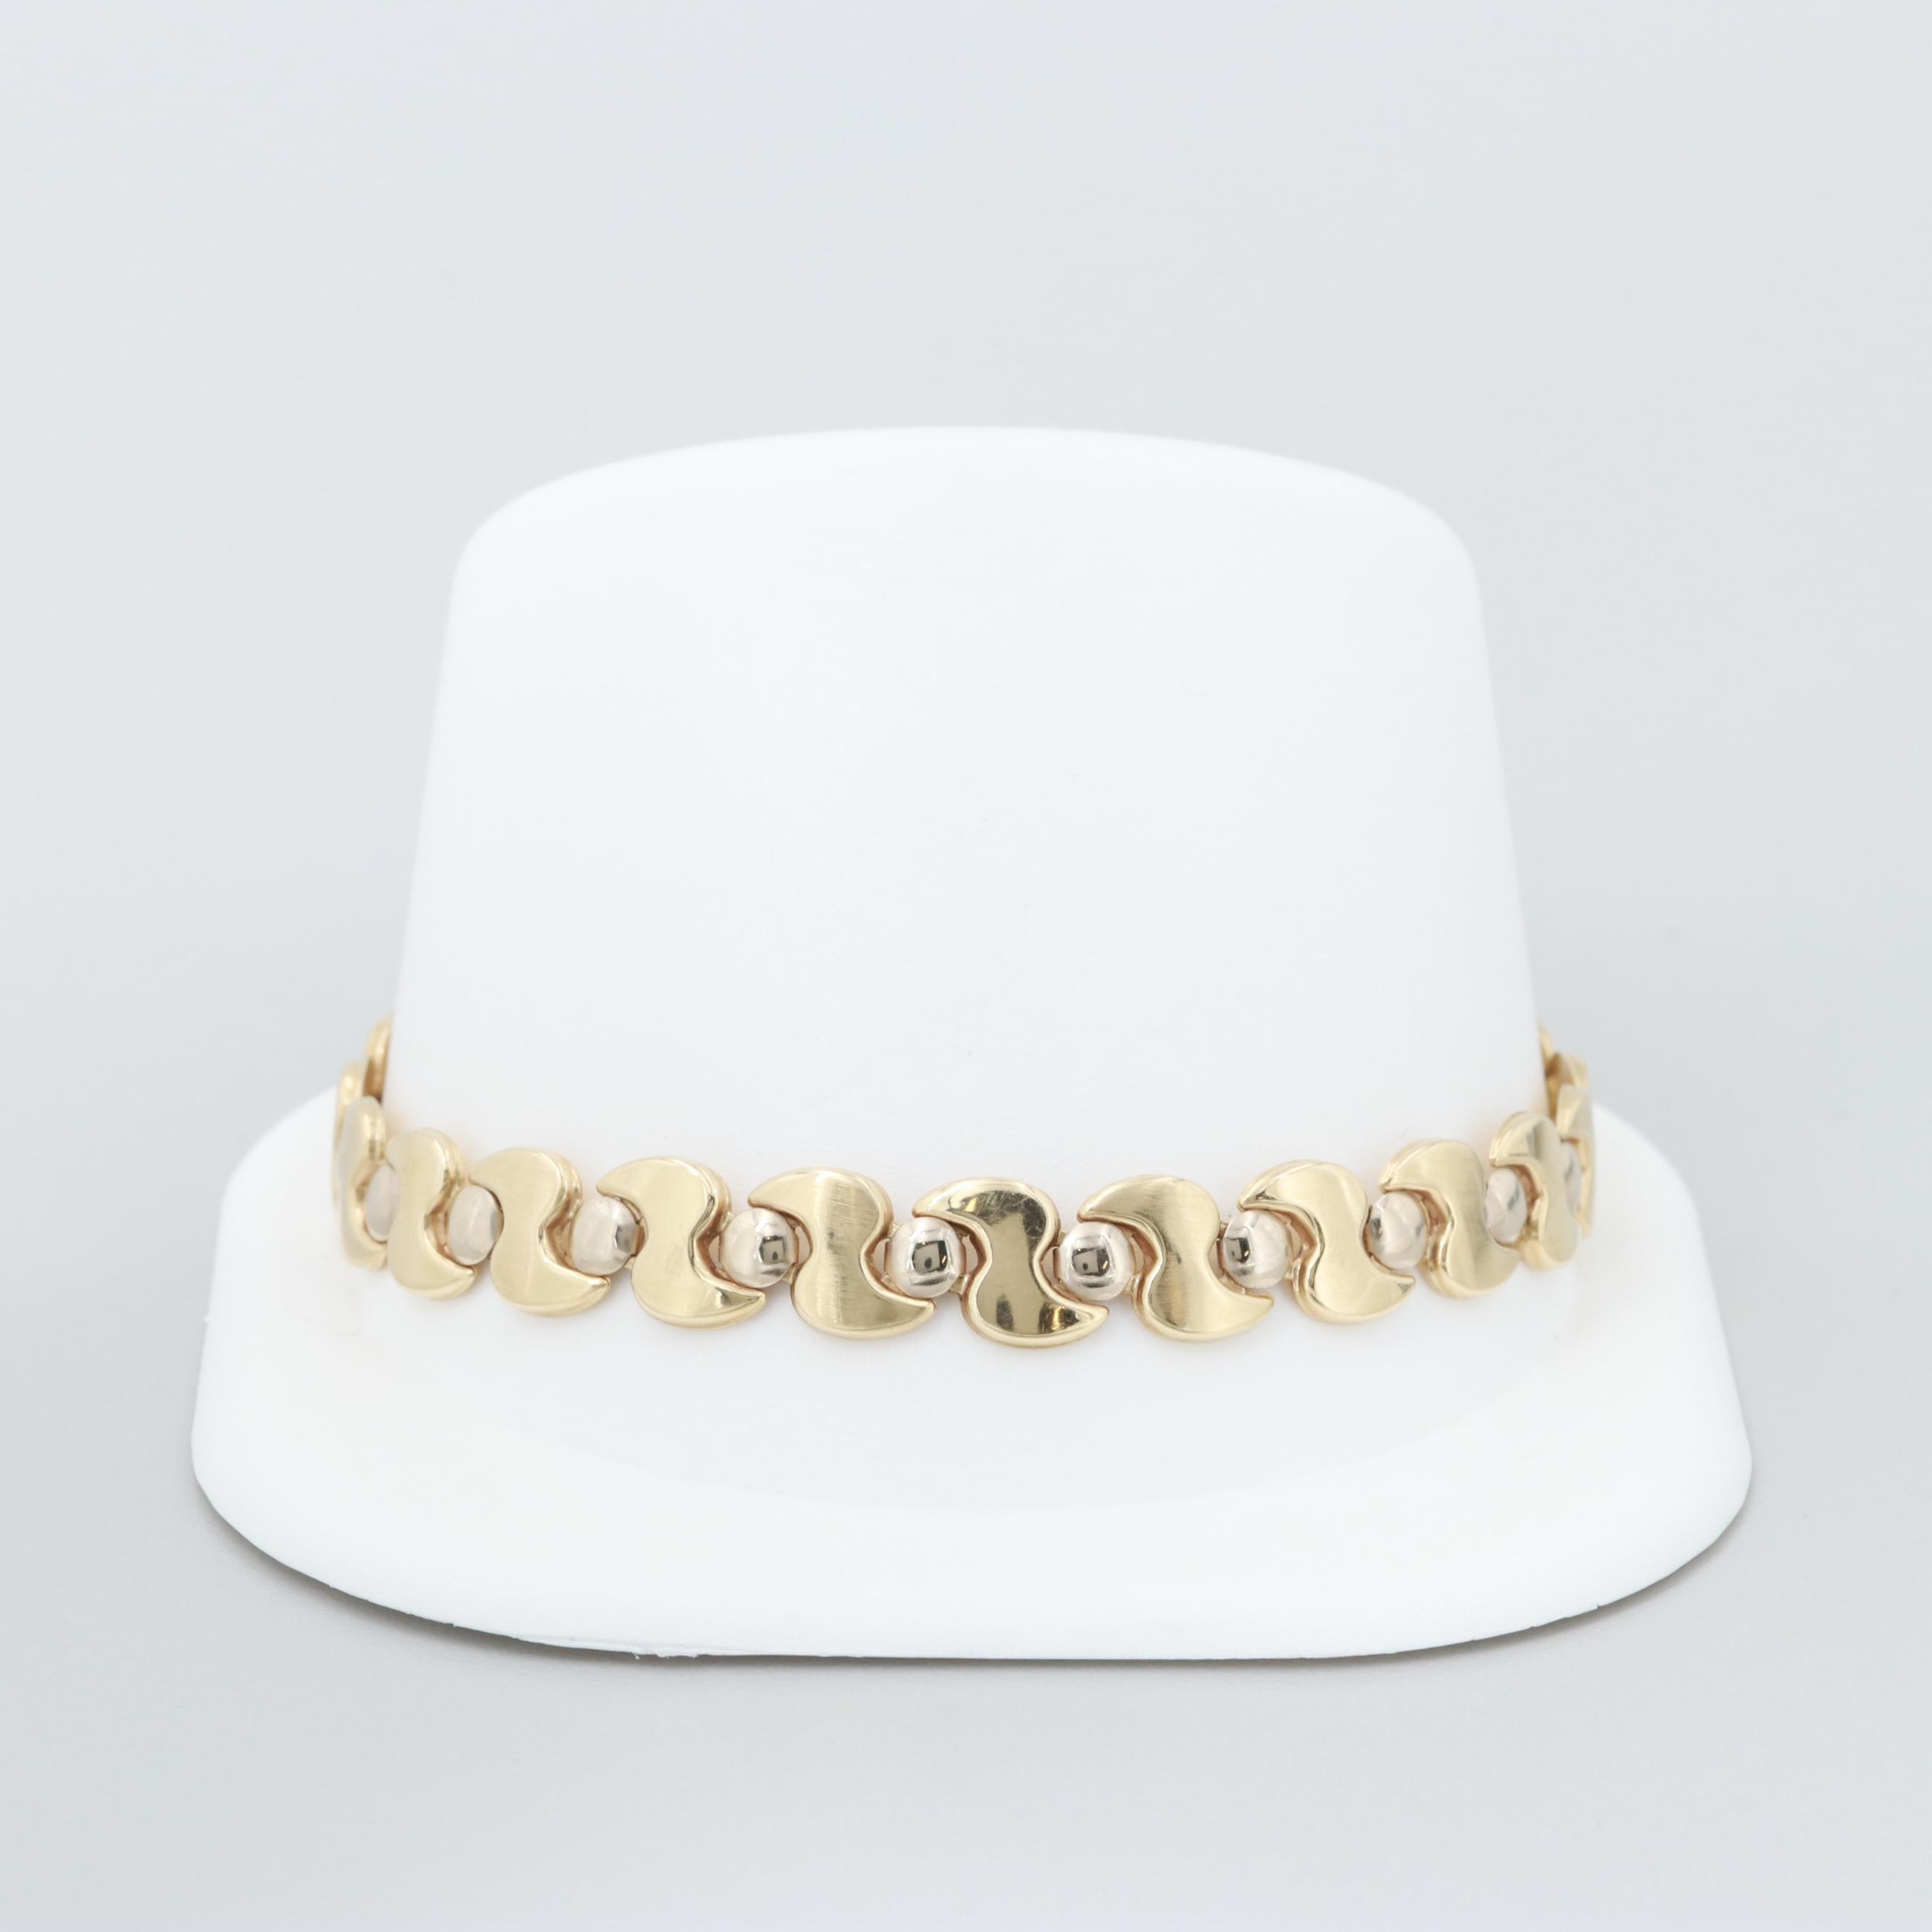 14K Yellow Gold Bracelet with White Gold Accents